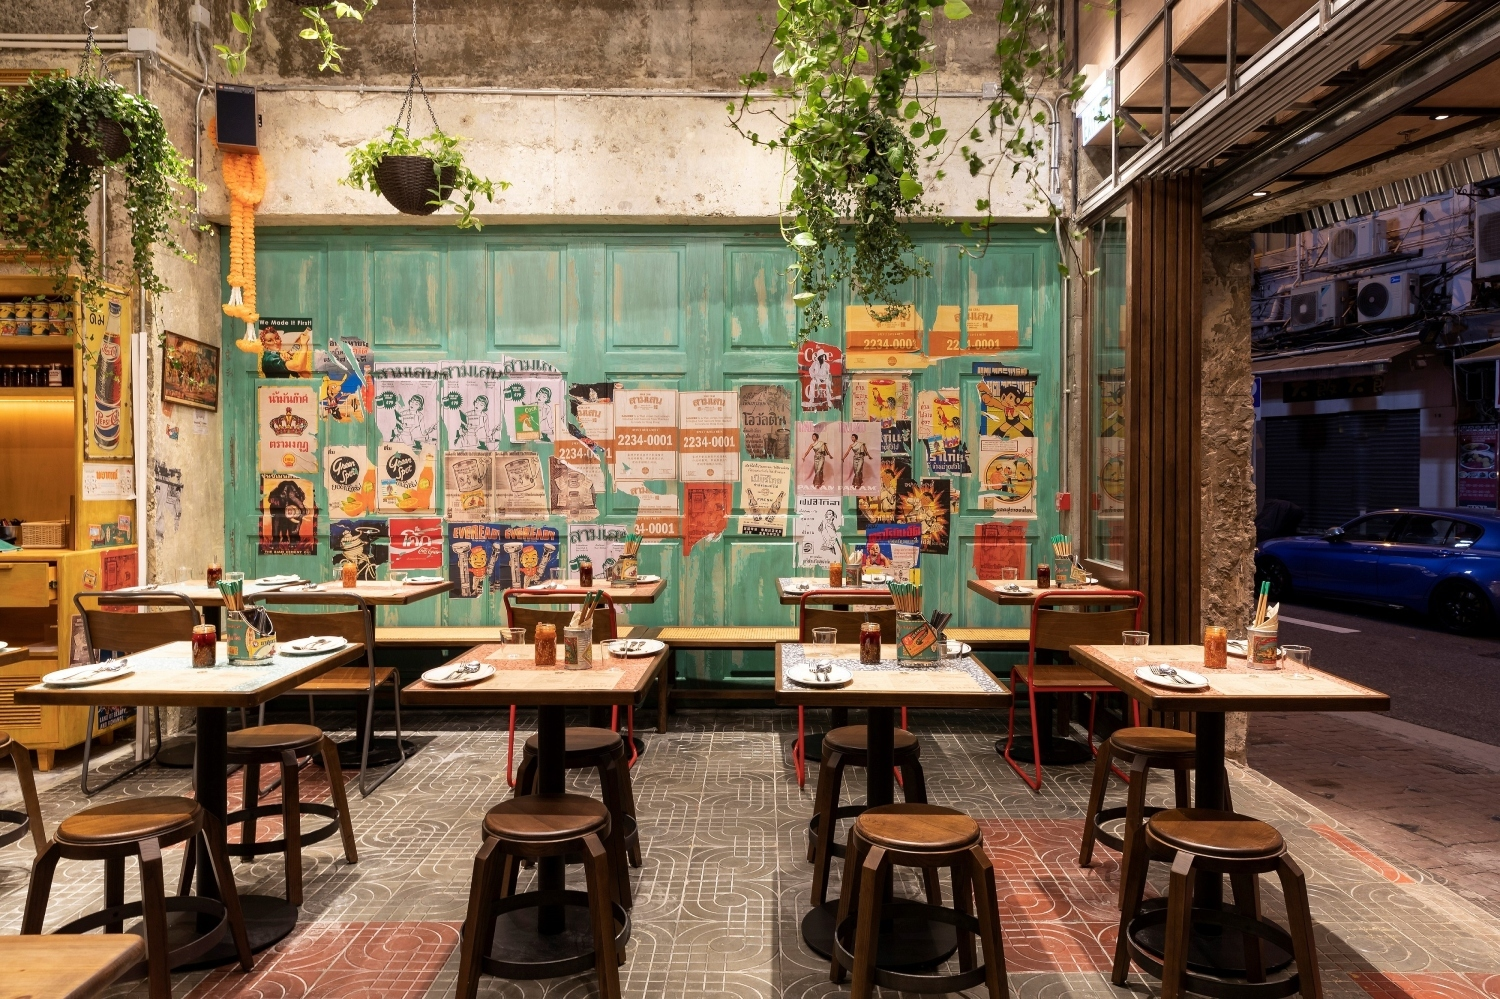 Thai restaurant Samsen opens second branch in Sheung Wan